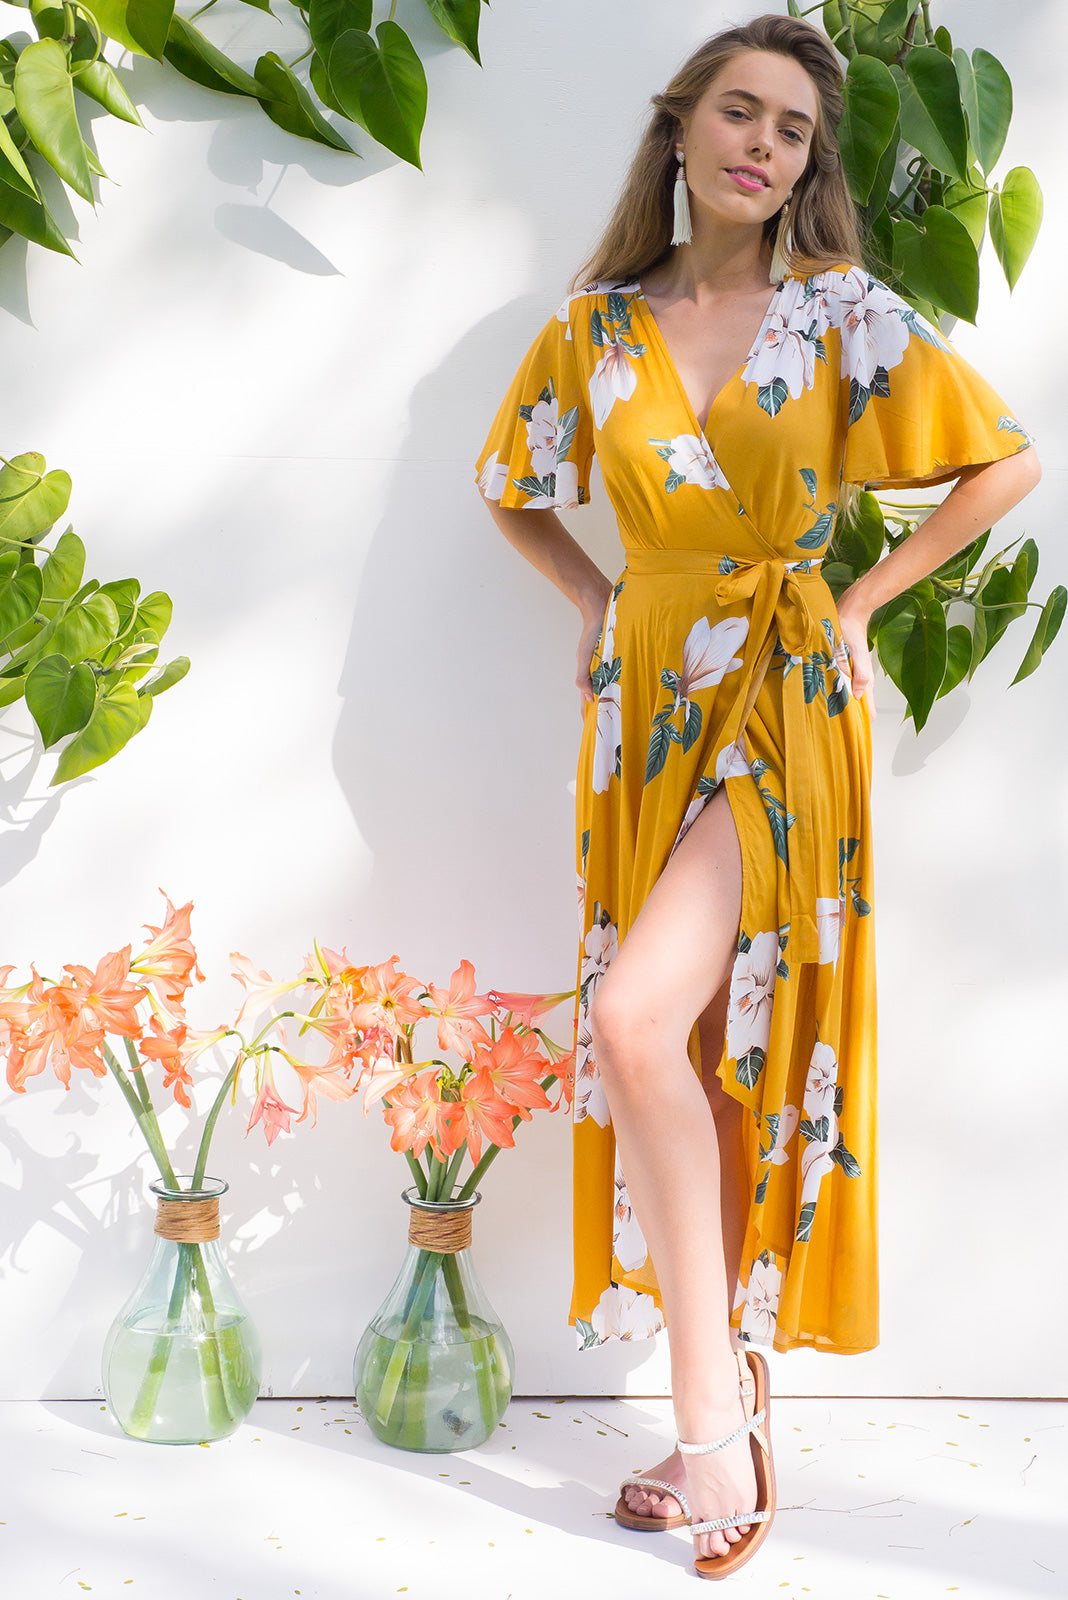 Petal Gardenia Gold Maxi Wrap dress with flutter sleeves in a vibrant gold and white romantic gardenia flower print